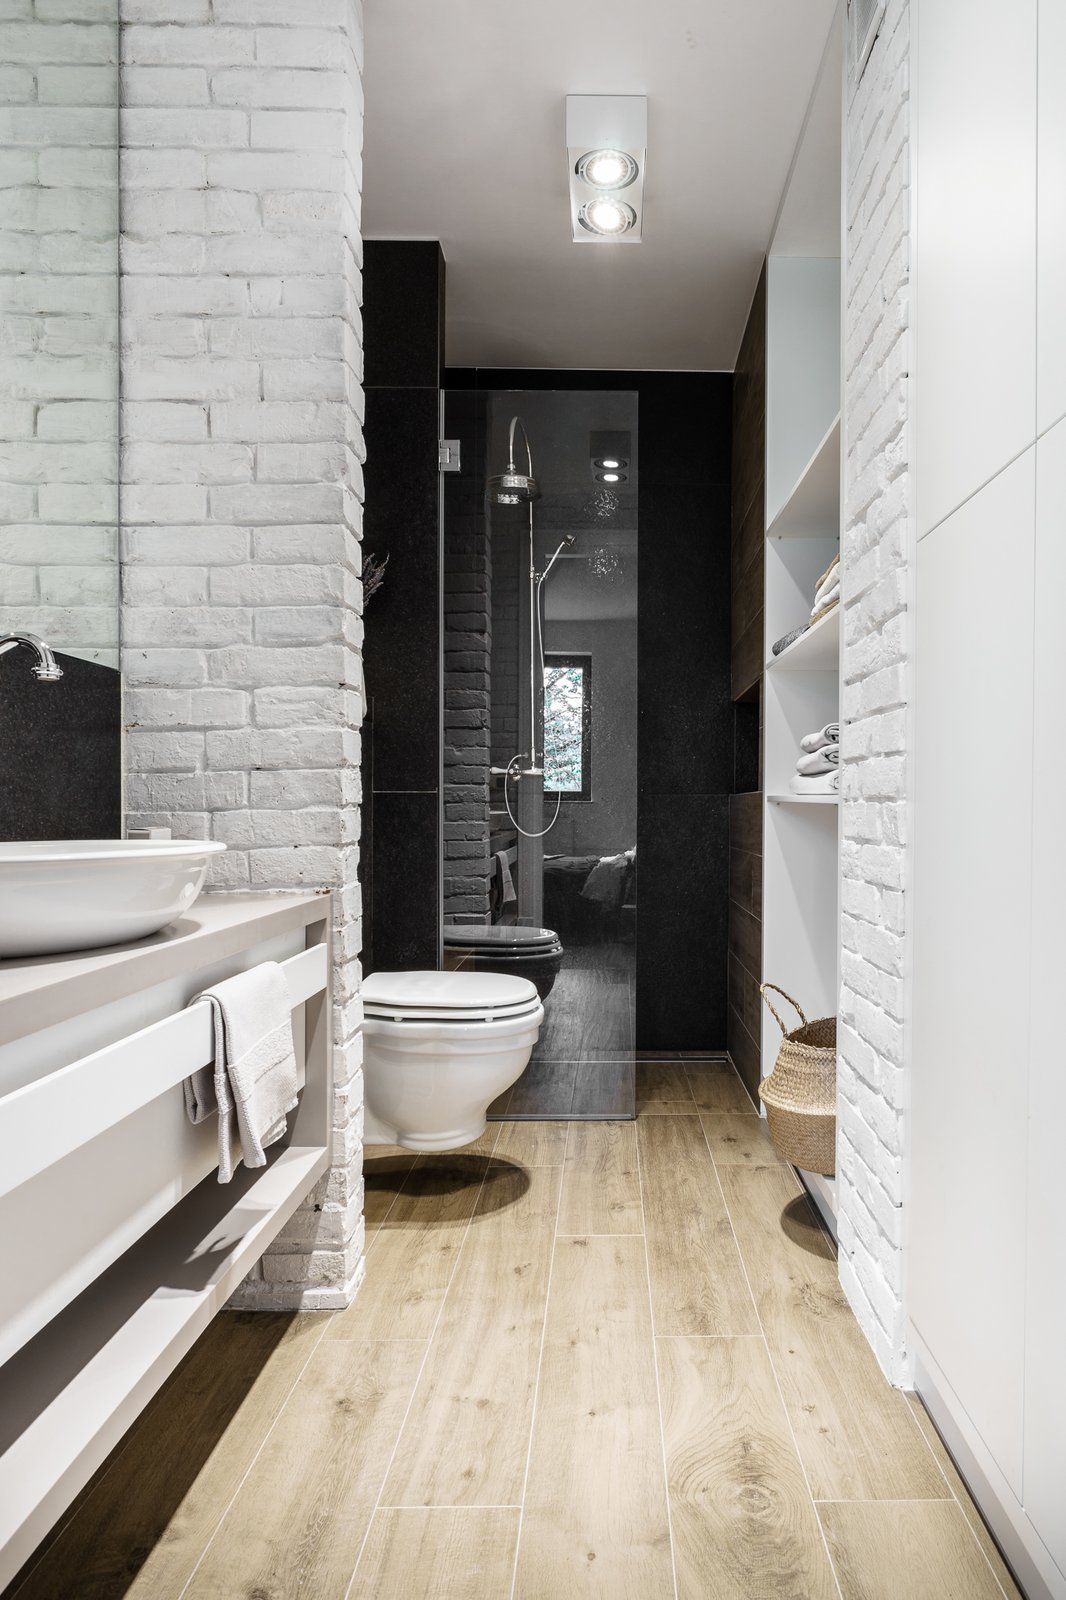 Tagged: Bath Room, Corner Shower, Light Hardwood Floor, Vessel Sink, Engineered Quartz Counter, Enclosed Shower, Ceiling Lighting, and One Piece Toilet.  Loft in Poland